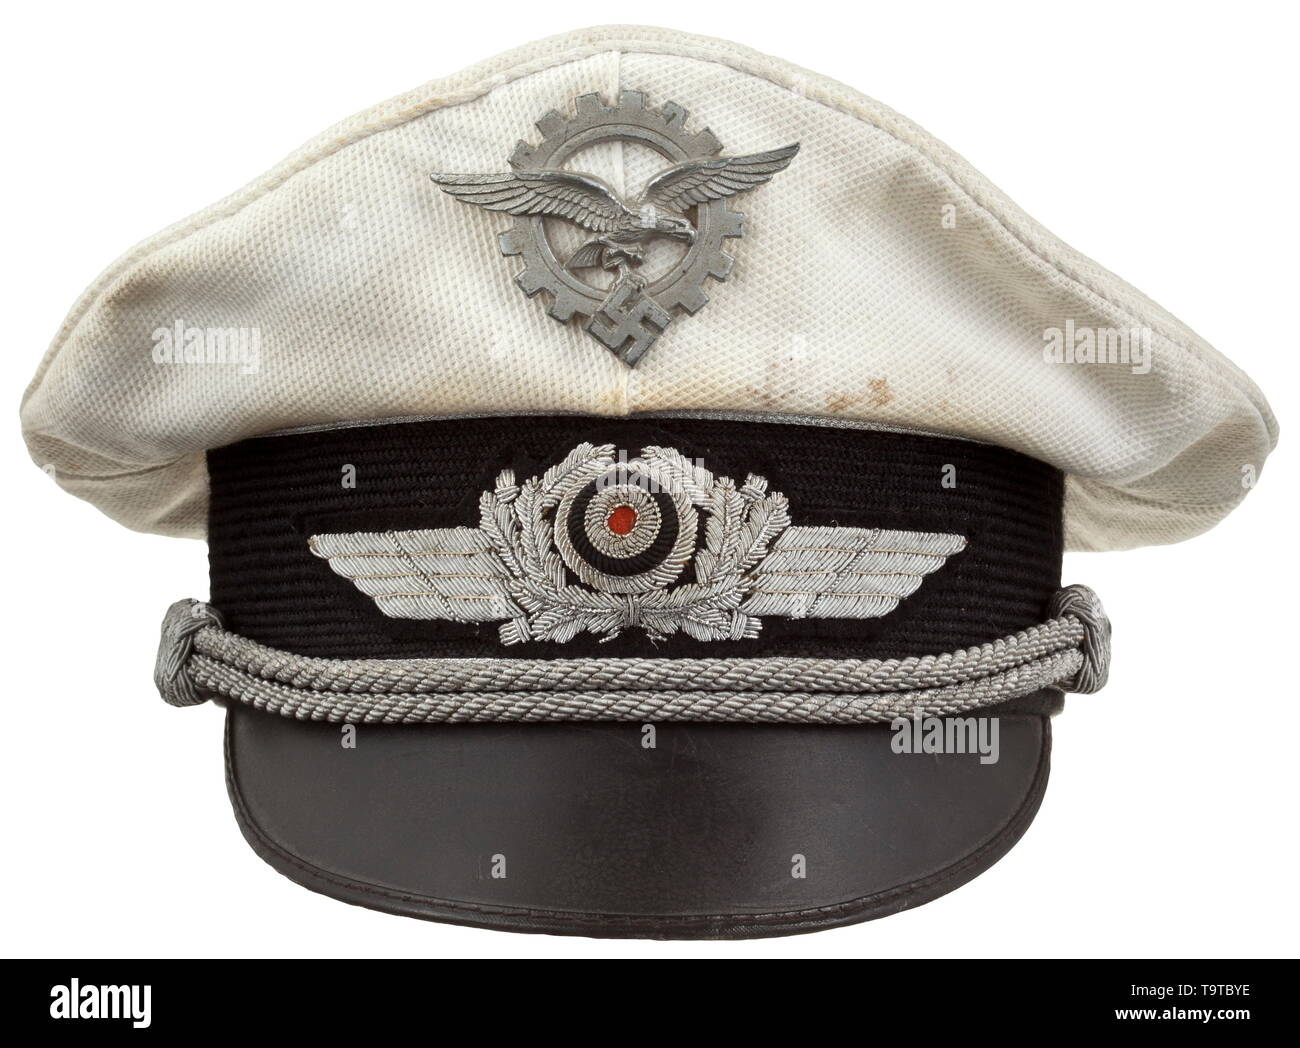 A visor cap for Luftwaffe officers as chiefs of aircraft procurement and supply white summer issue, manufactured by Breiter, Munich historic, historical, Air Force, branch of service, branches of service, armed service, armed services, military, militaria, air forces, object, objects, stills, clipping, clippings, cut out, cut-out, cut-outs, 20th century, Editorial-Use-Only - Stock Image